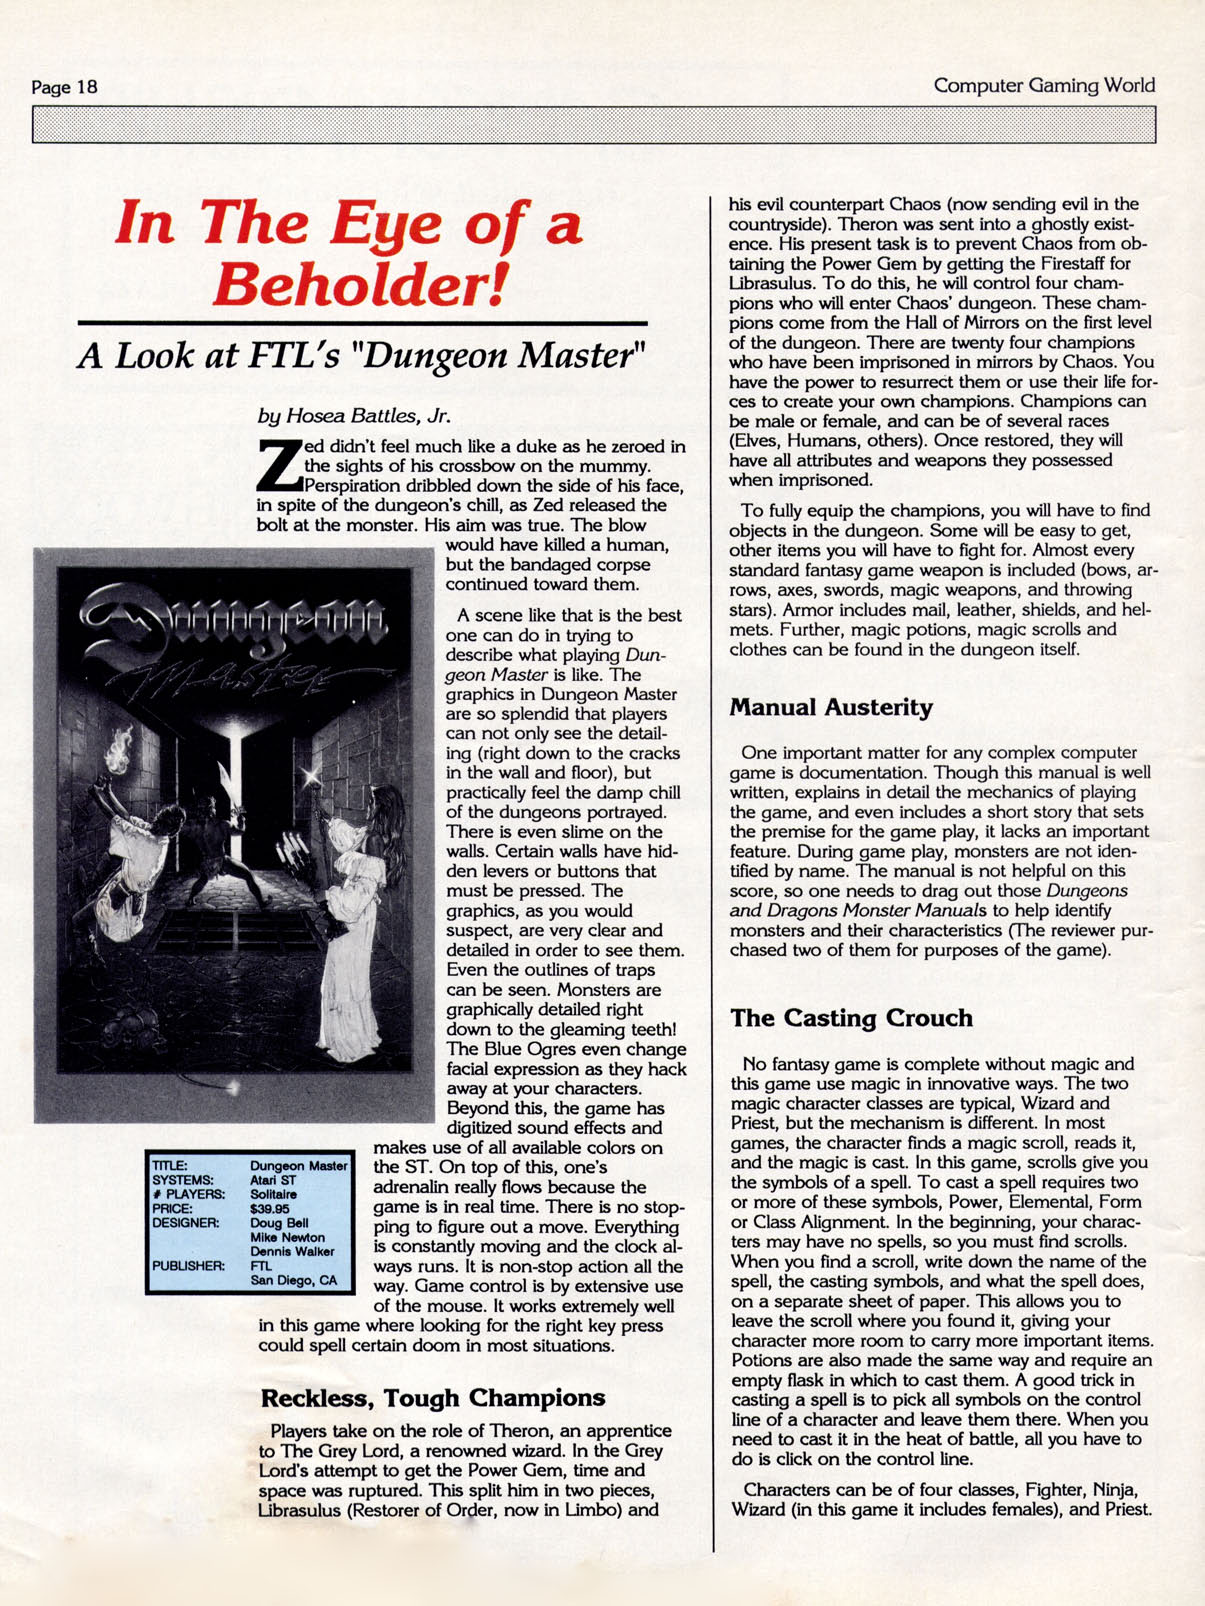 Dungeon Master for Atari ST Review published in American magazine 'Computer Gaming World', Issue #46, April 1988, Page 18